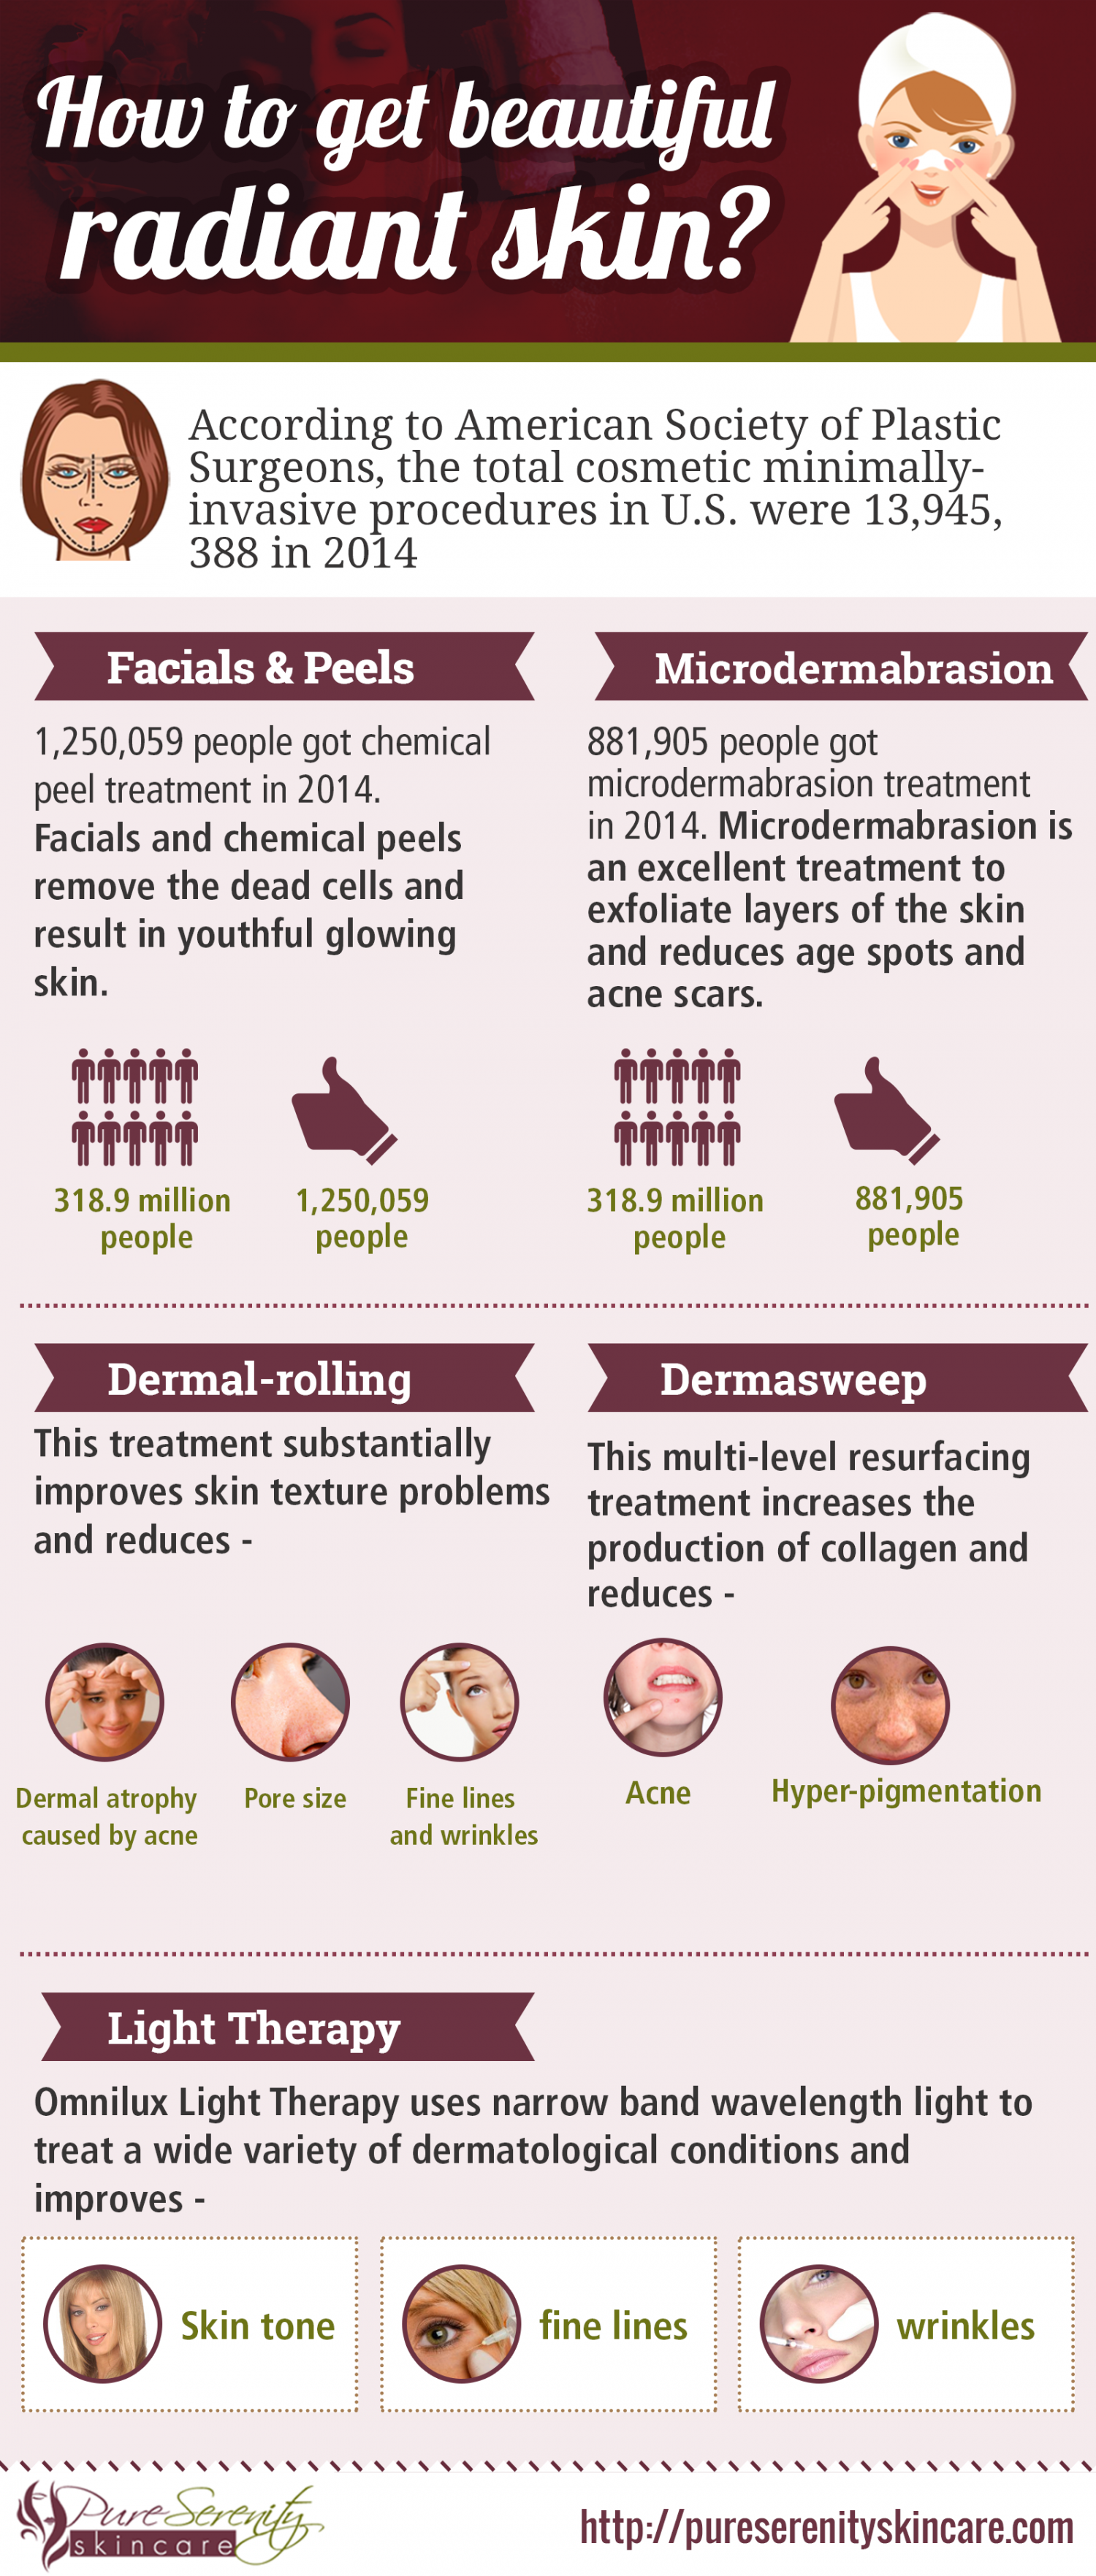 How To Get Beautiful Radiant Skin Infographic